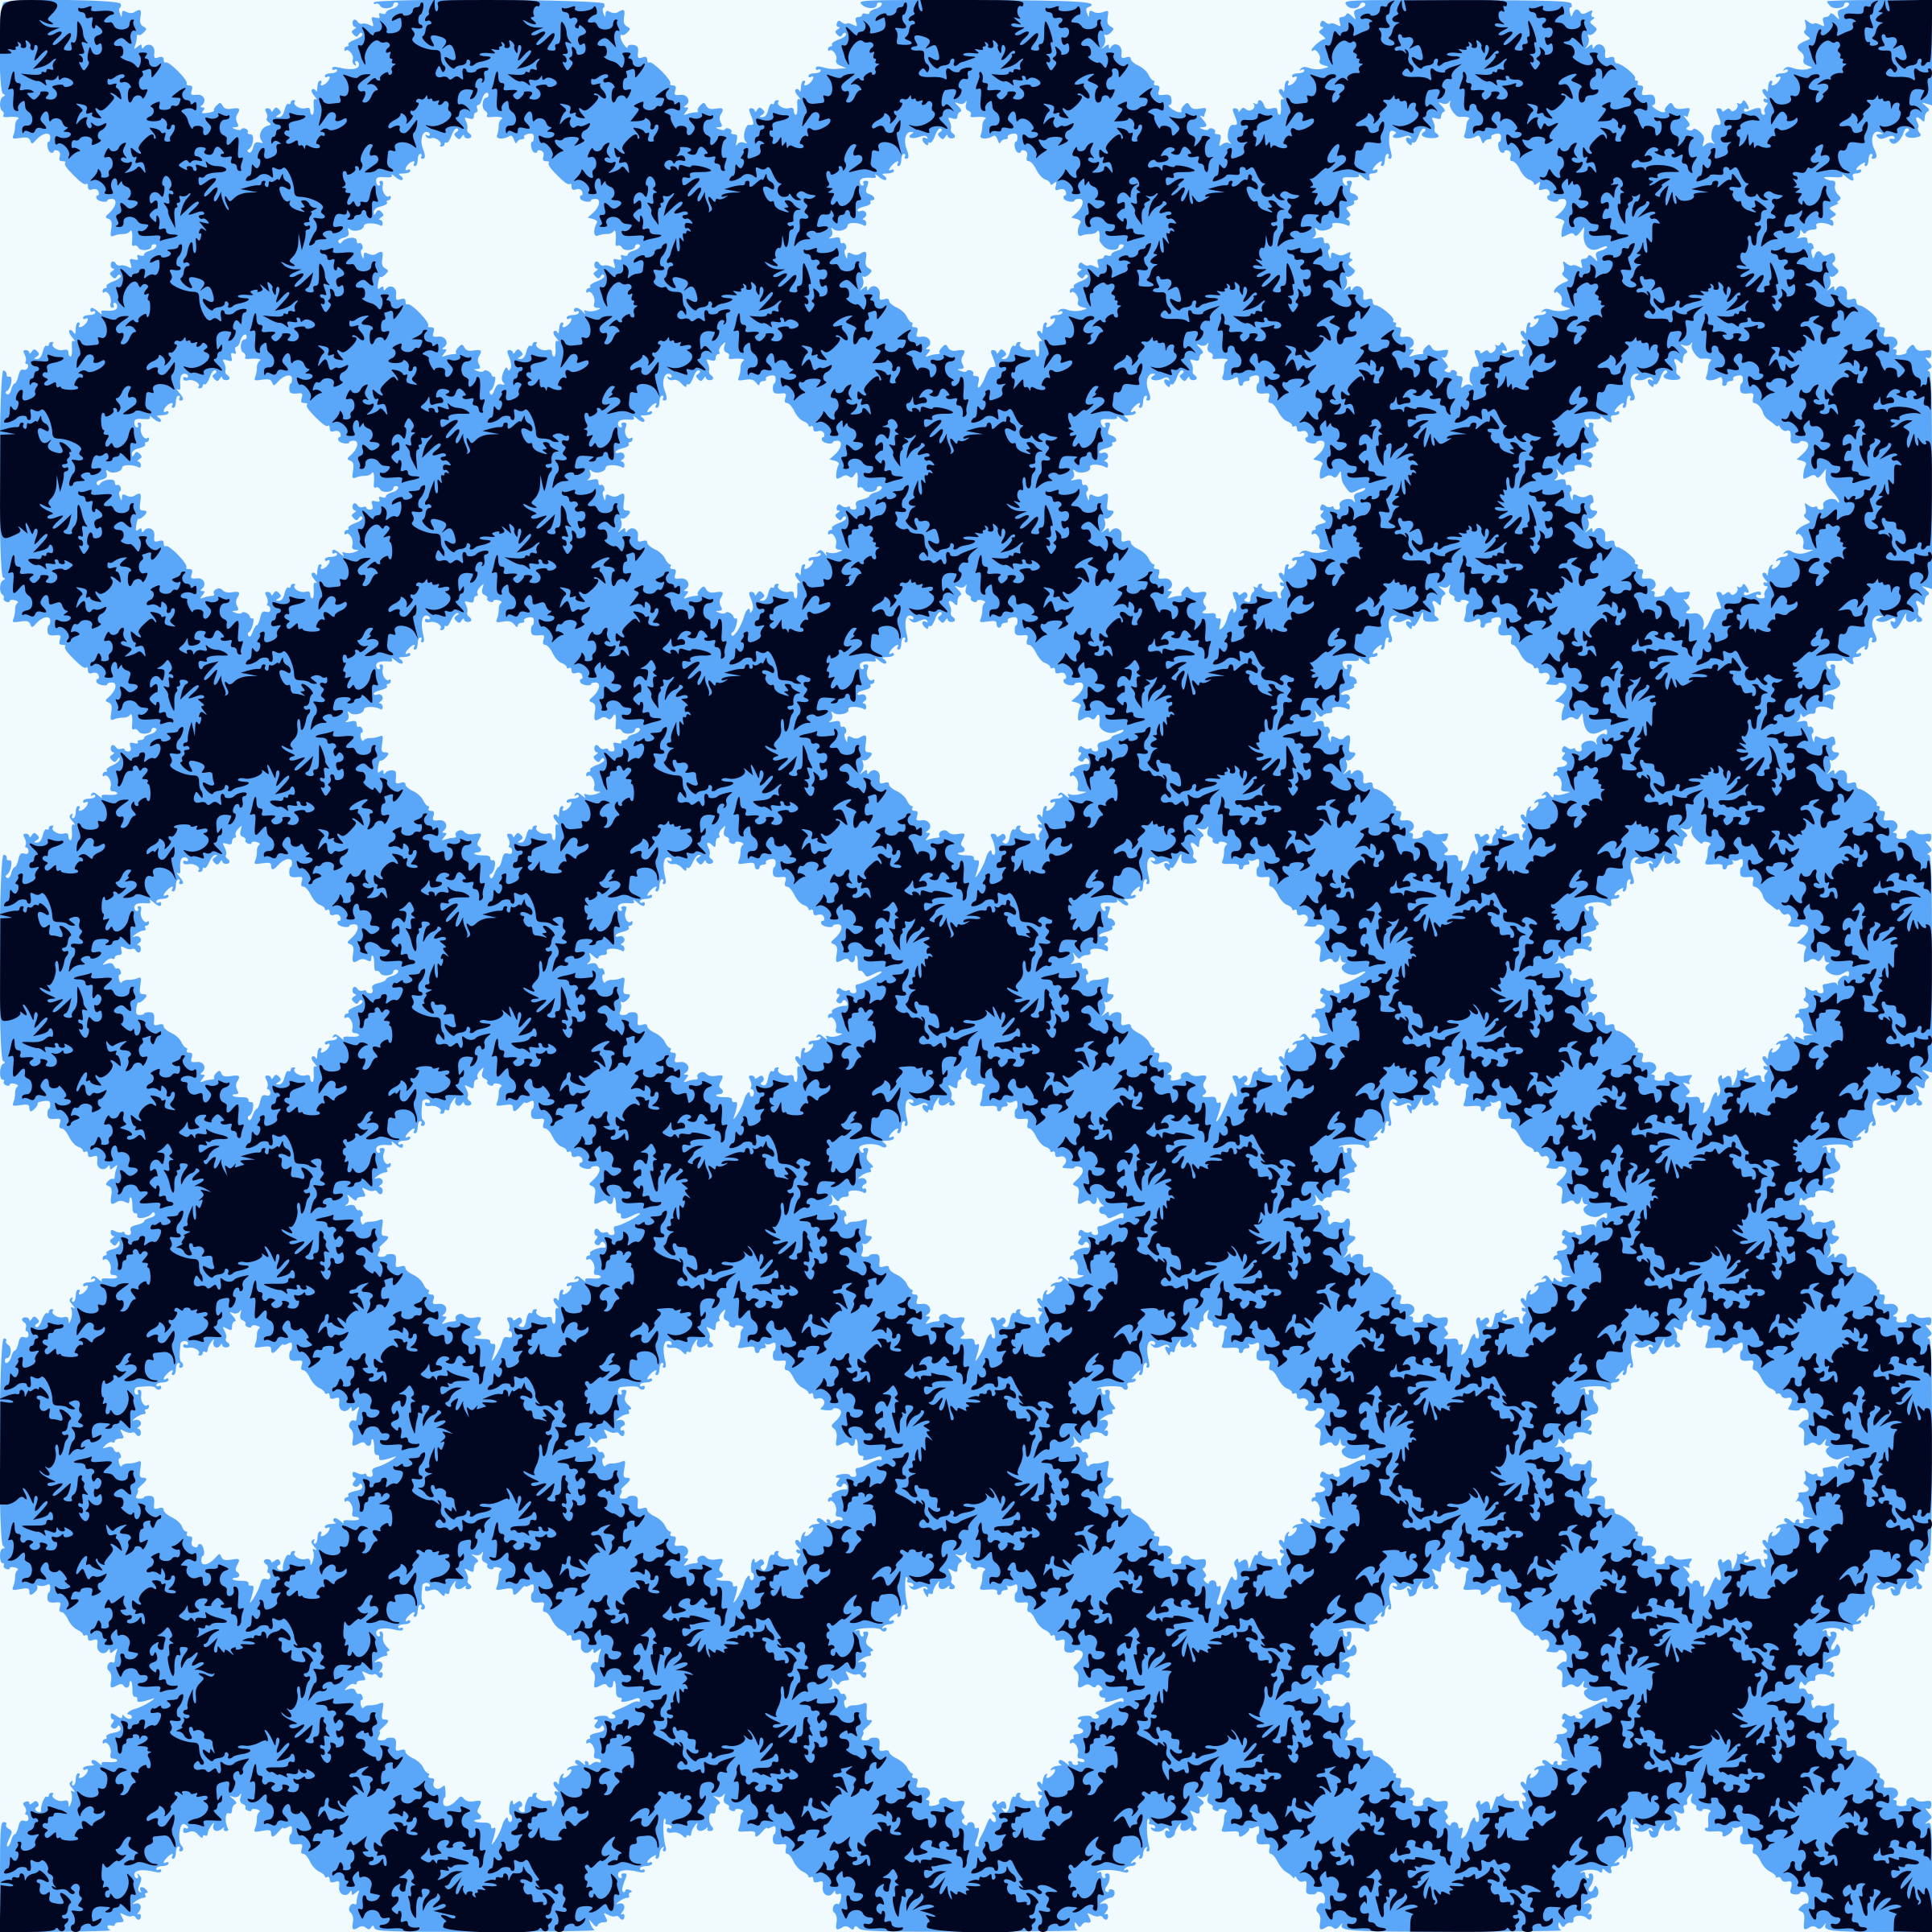 Background pattern 3 by Firkin